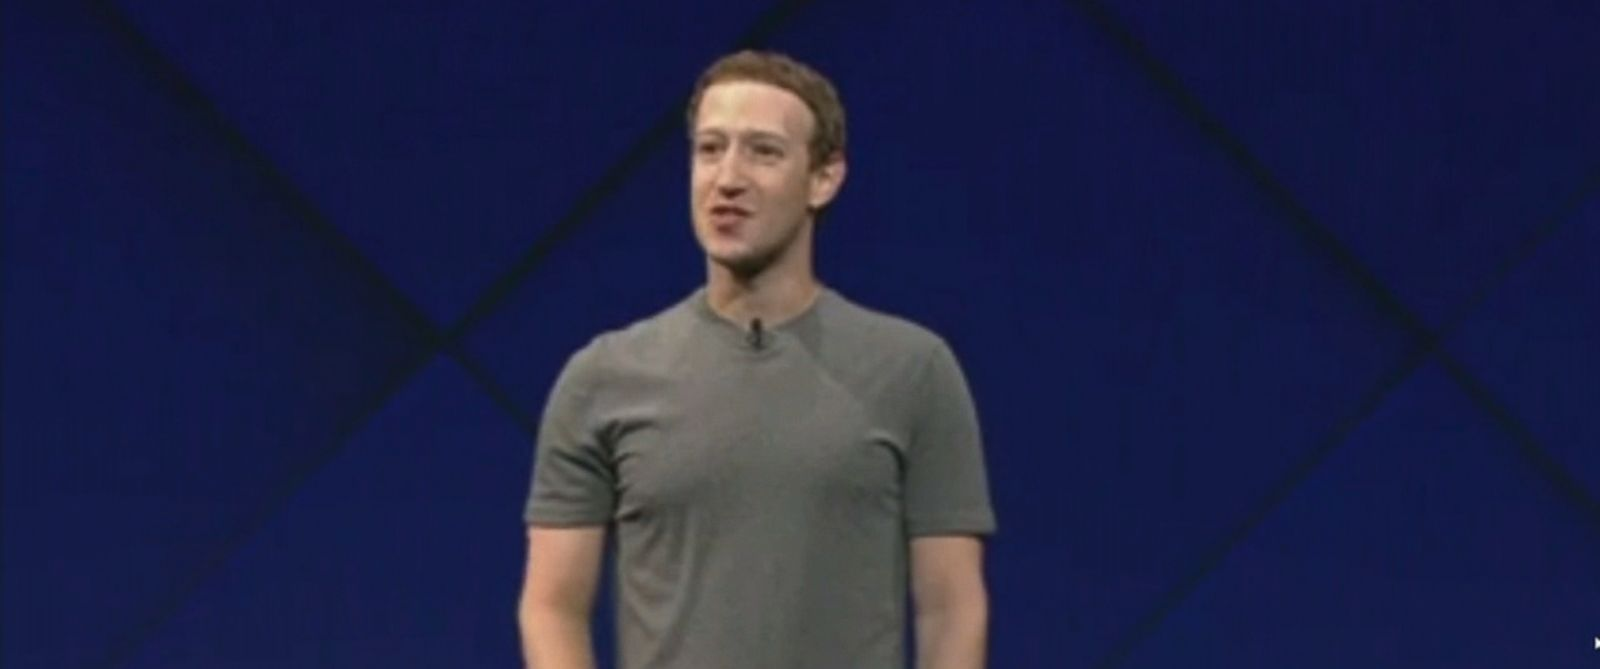 The Facebook CEO outlined steps to ensure it won't happen again.